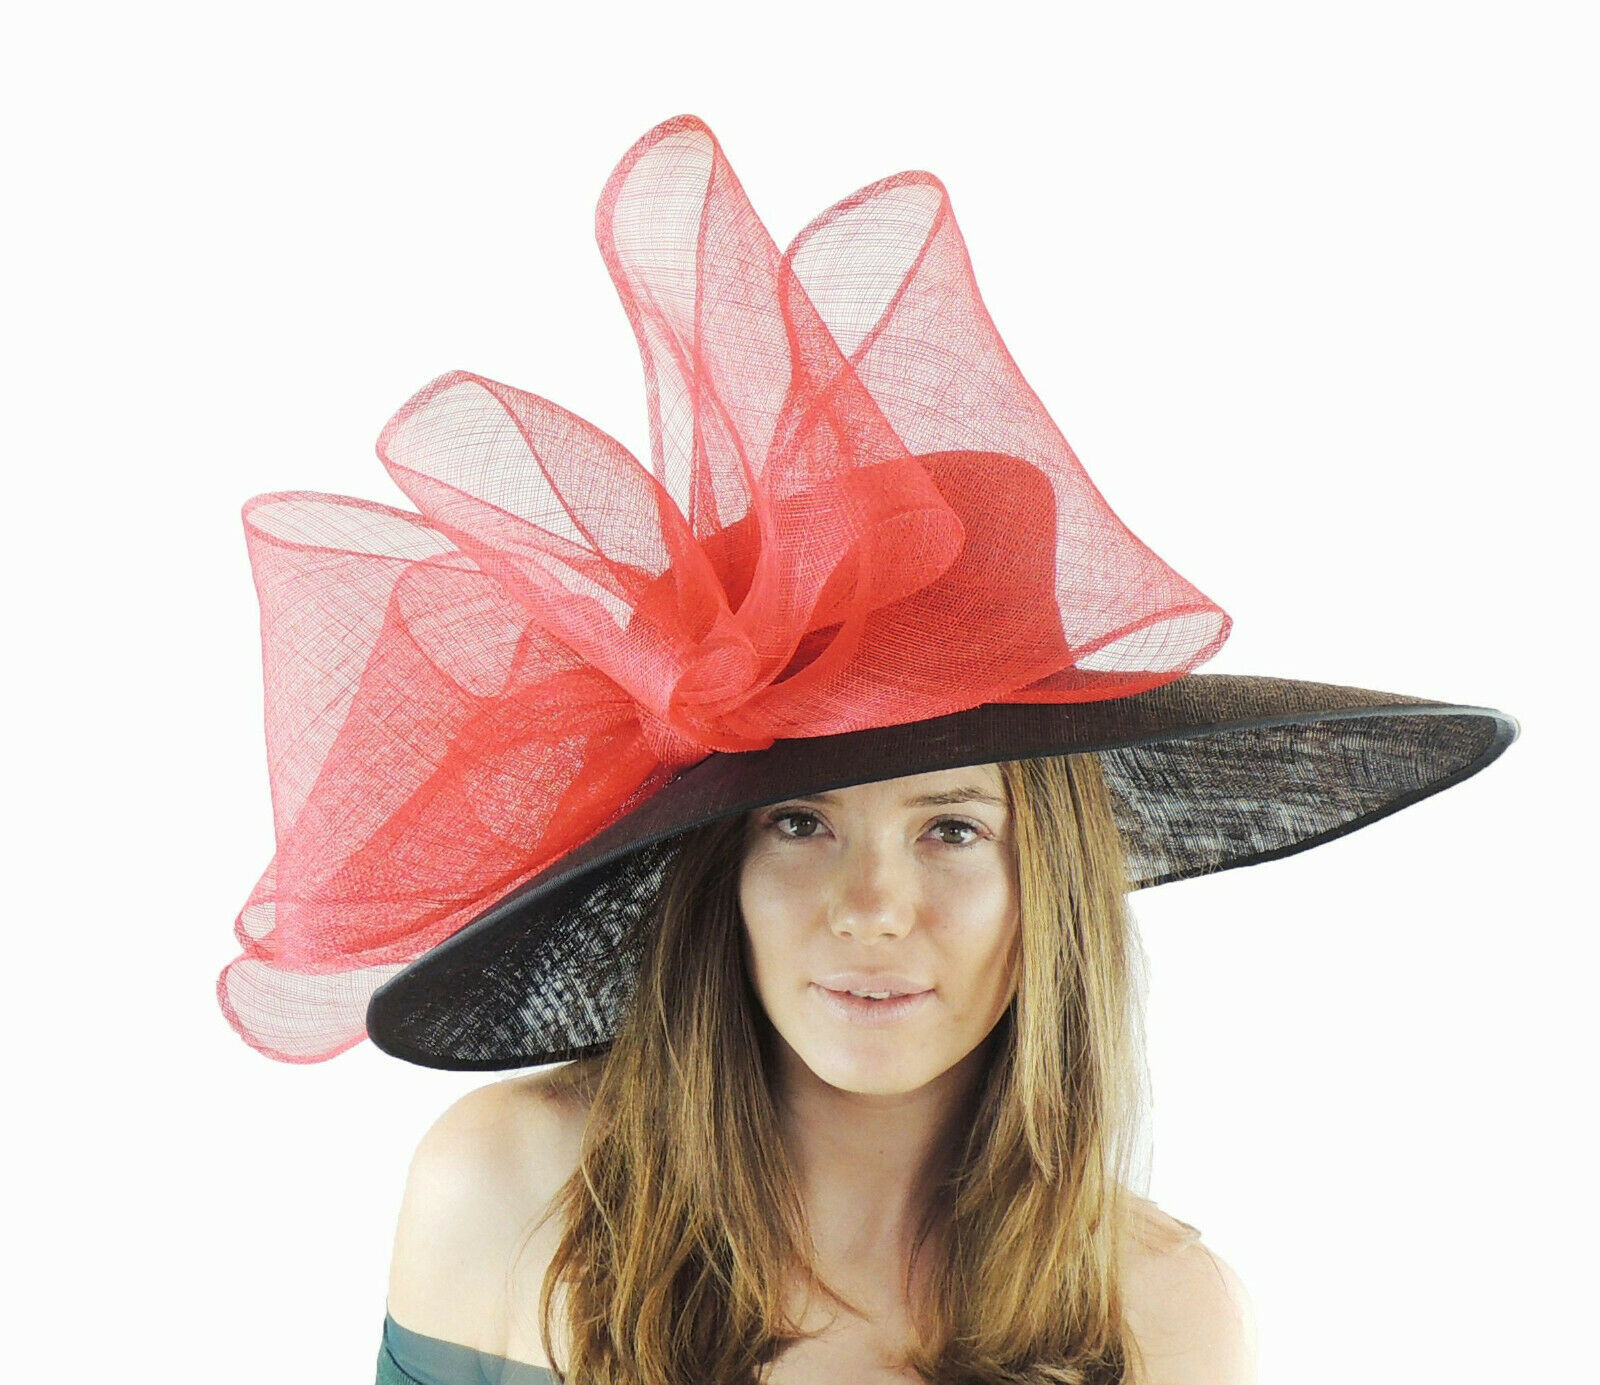 Black Red Large Ascot Hat for Weddings, Ascot, Derby in many colors HM3